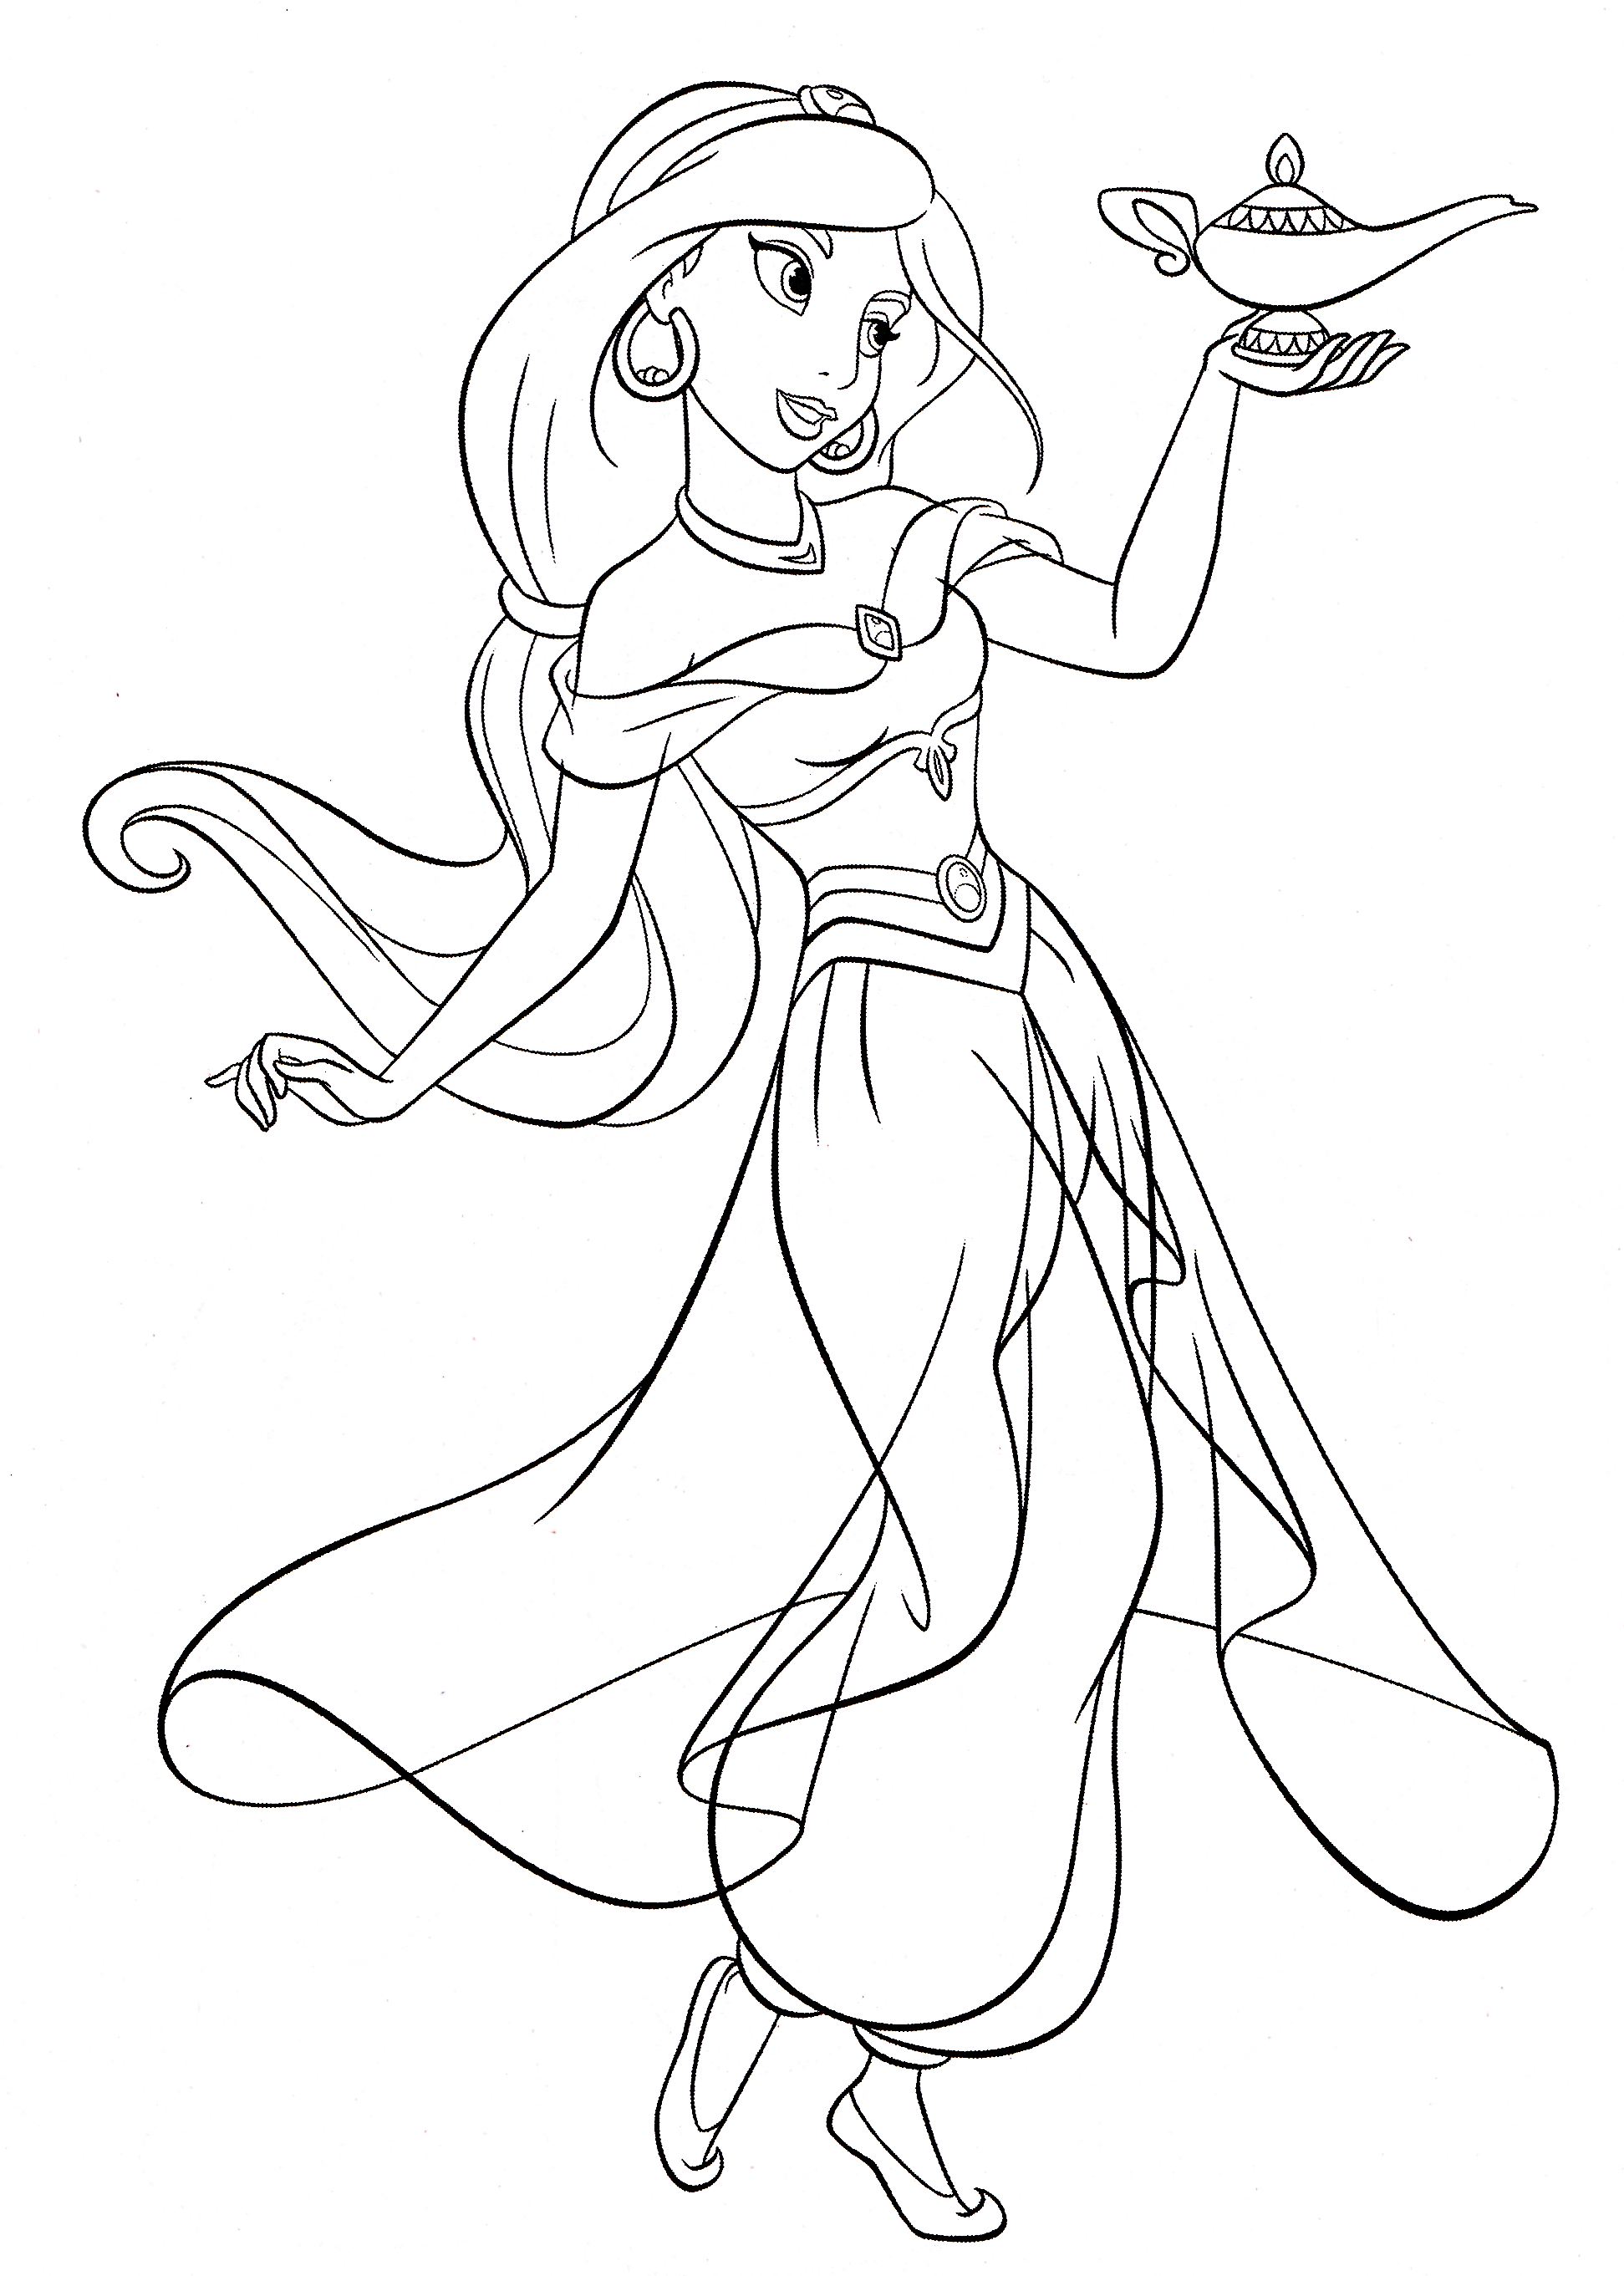 disney princess jasmine coloring pages - photo#2